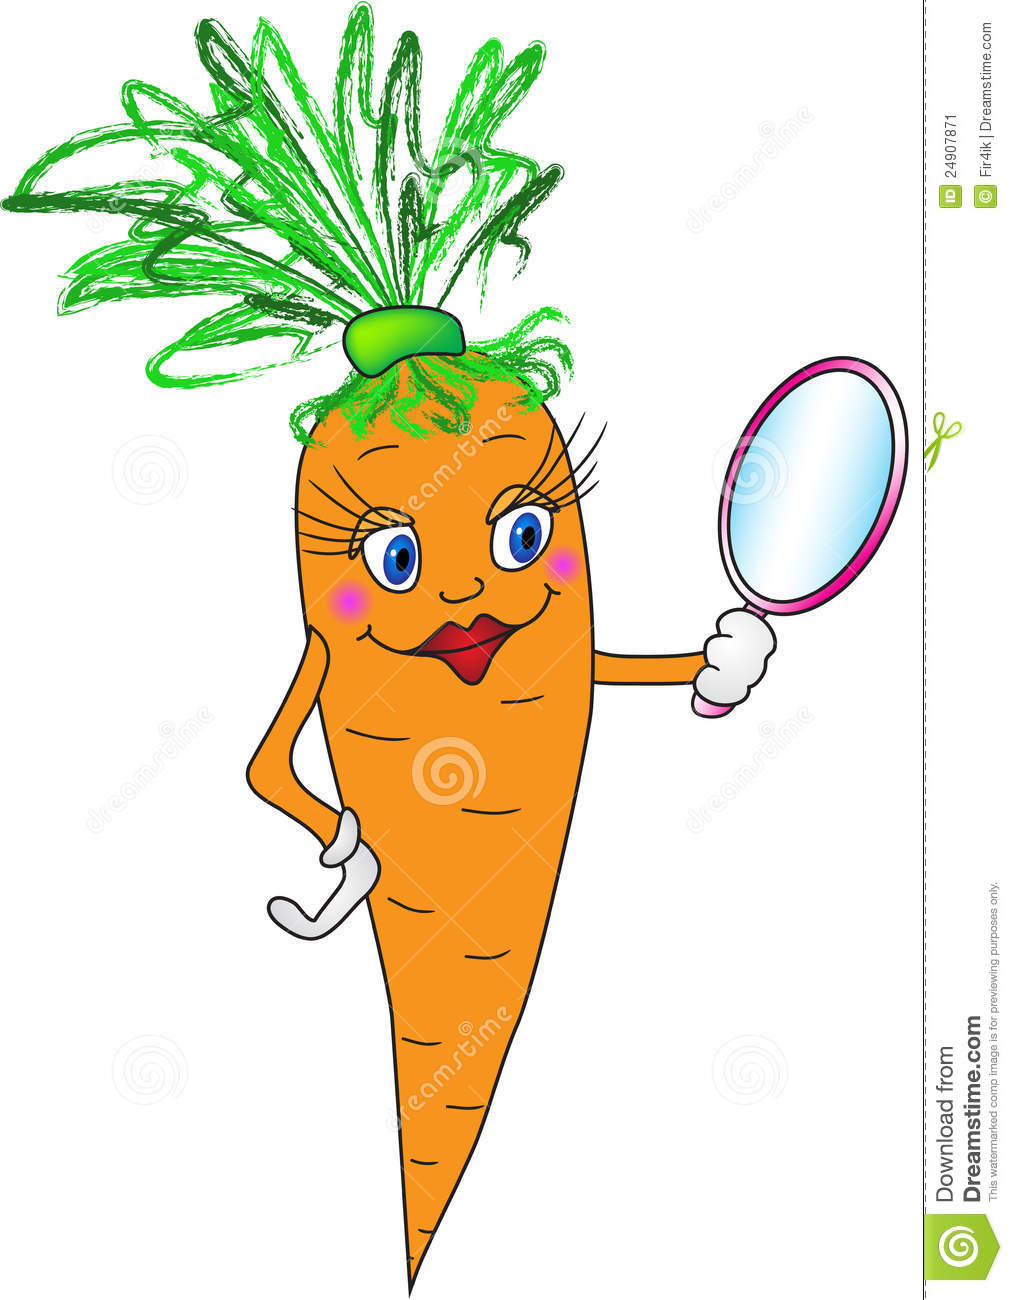 Cartoon carrot with mirror. Vector illustration (EPS 8).